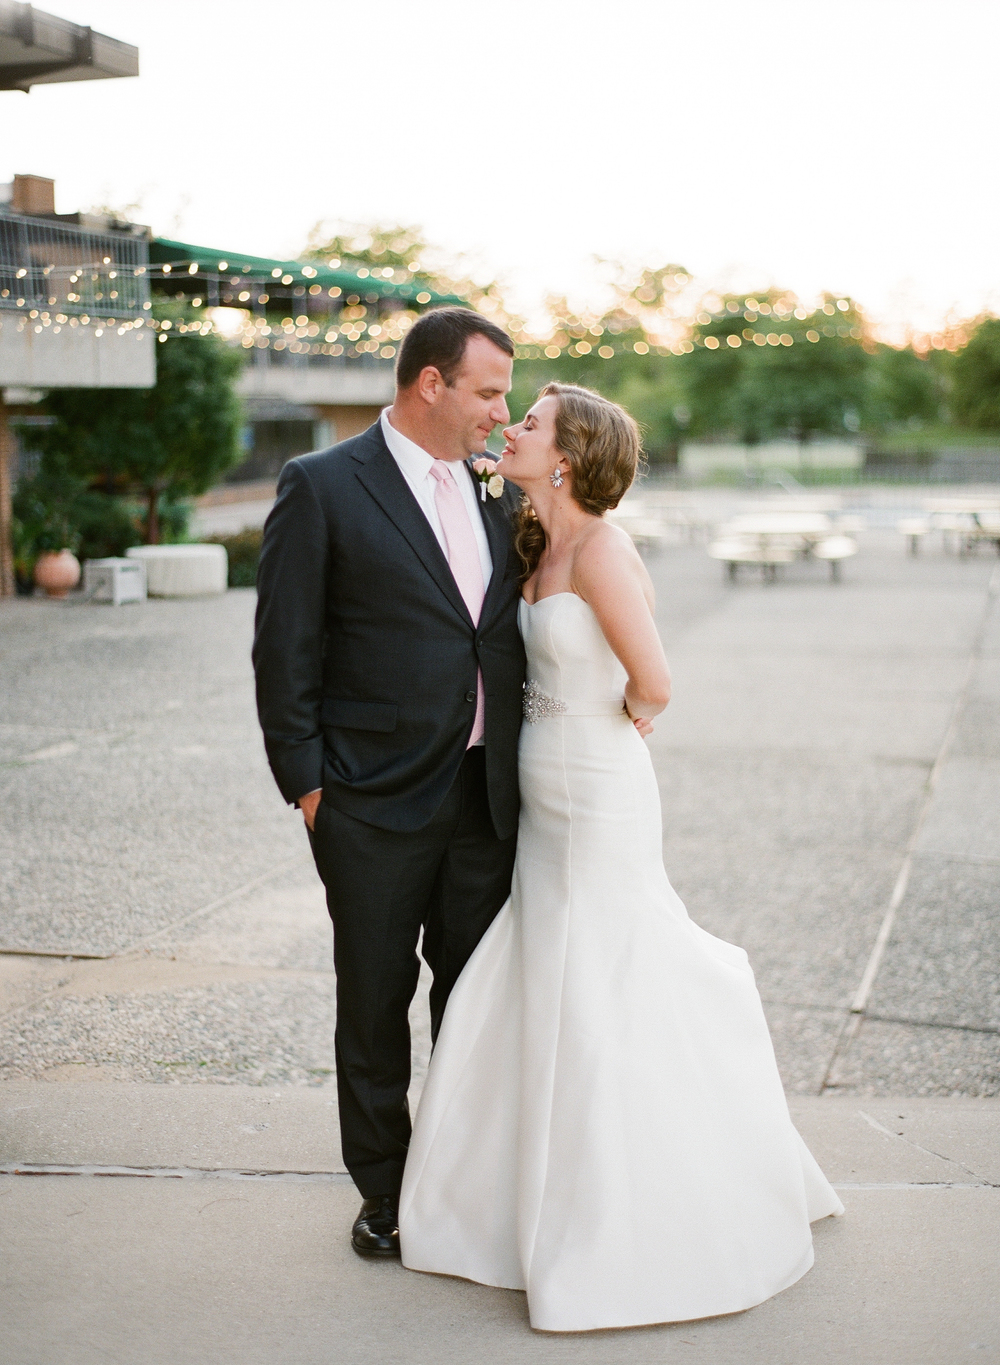 Weddings are all about moments. And those moments are capture by photographers. This moment wouldn't be here for us to enjoy if it wasn't for the beautiful work of  Arielle Doneson.